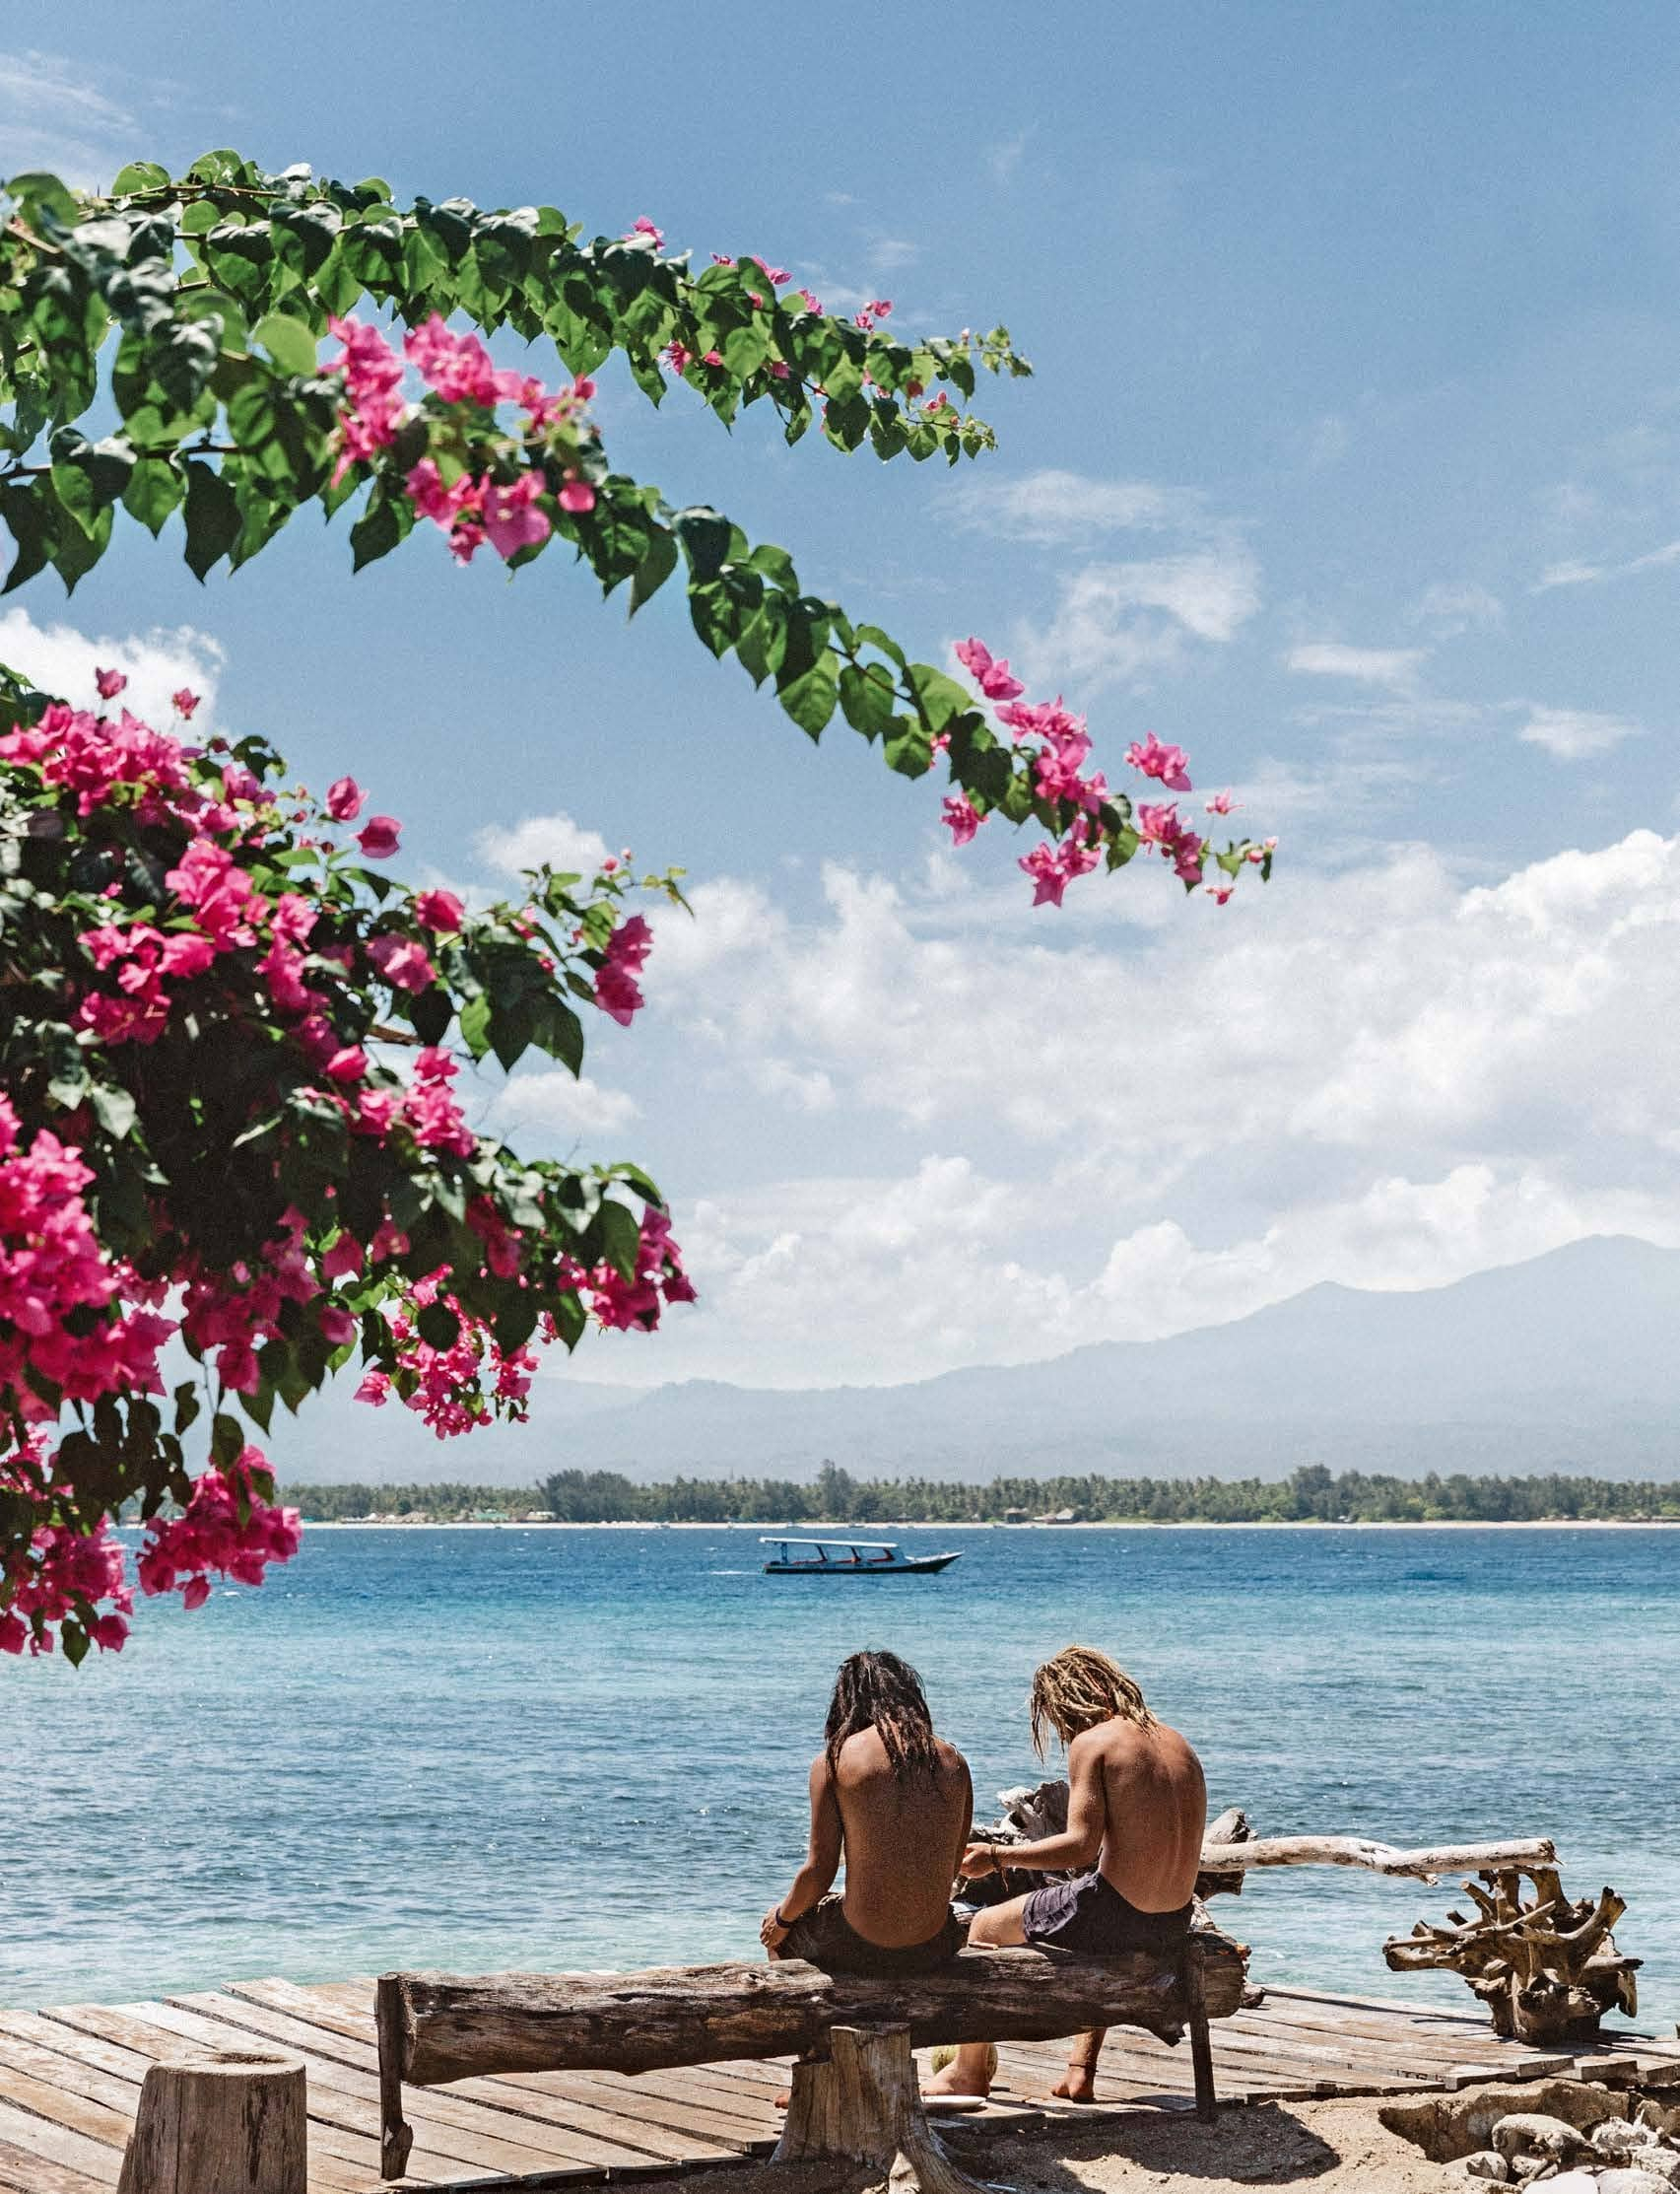 Gili Islands In Indonesia Is Perfect For Beach Bums And Headonists